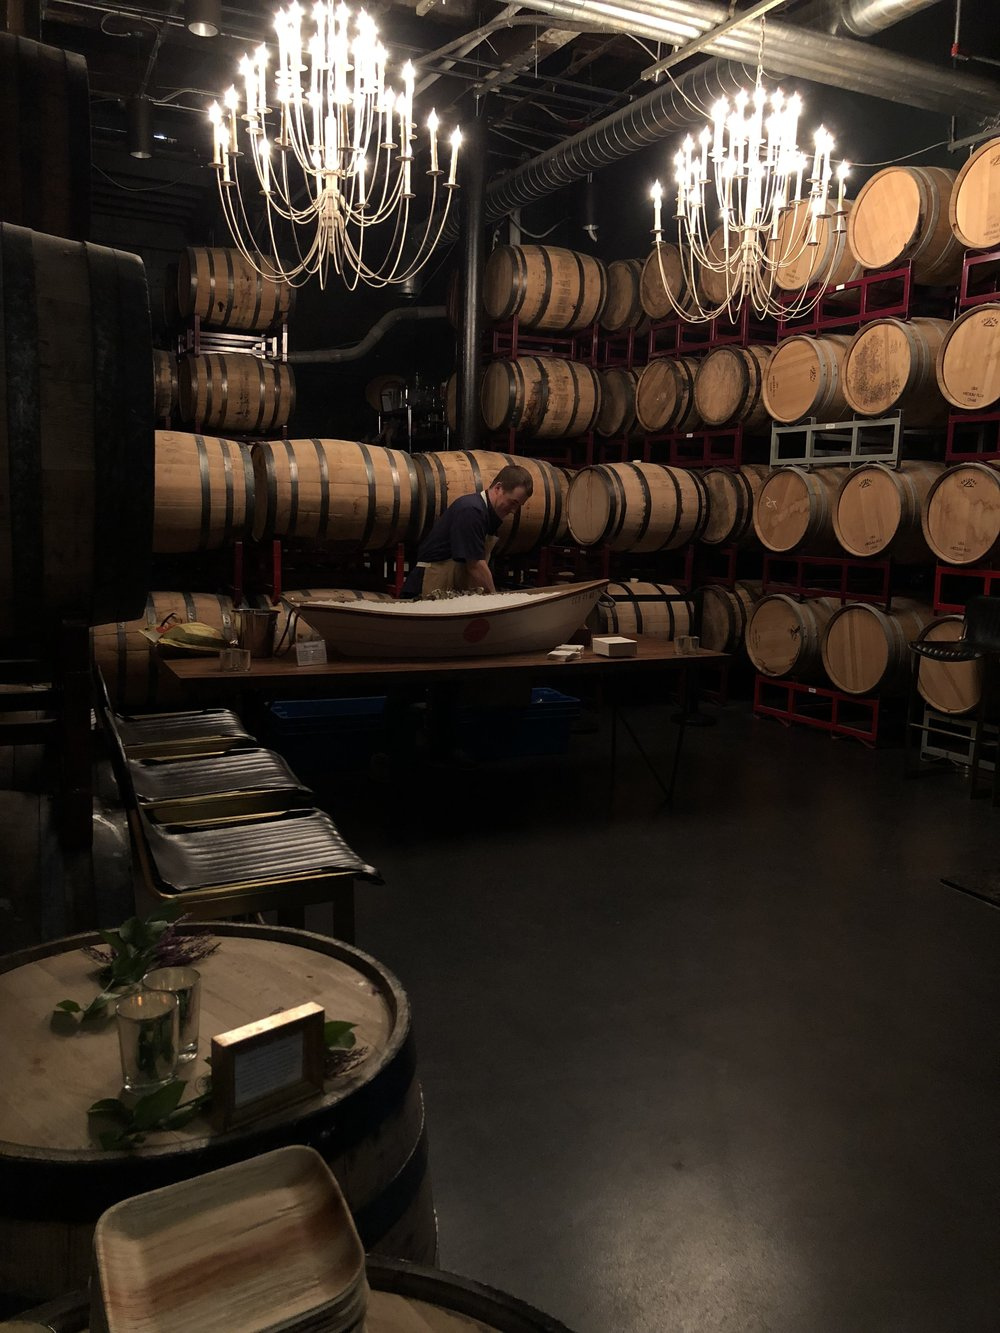 Island Creek Oyster Bar in the Barrel Room